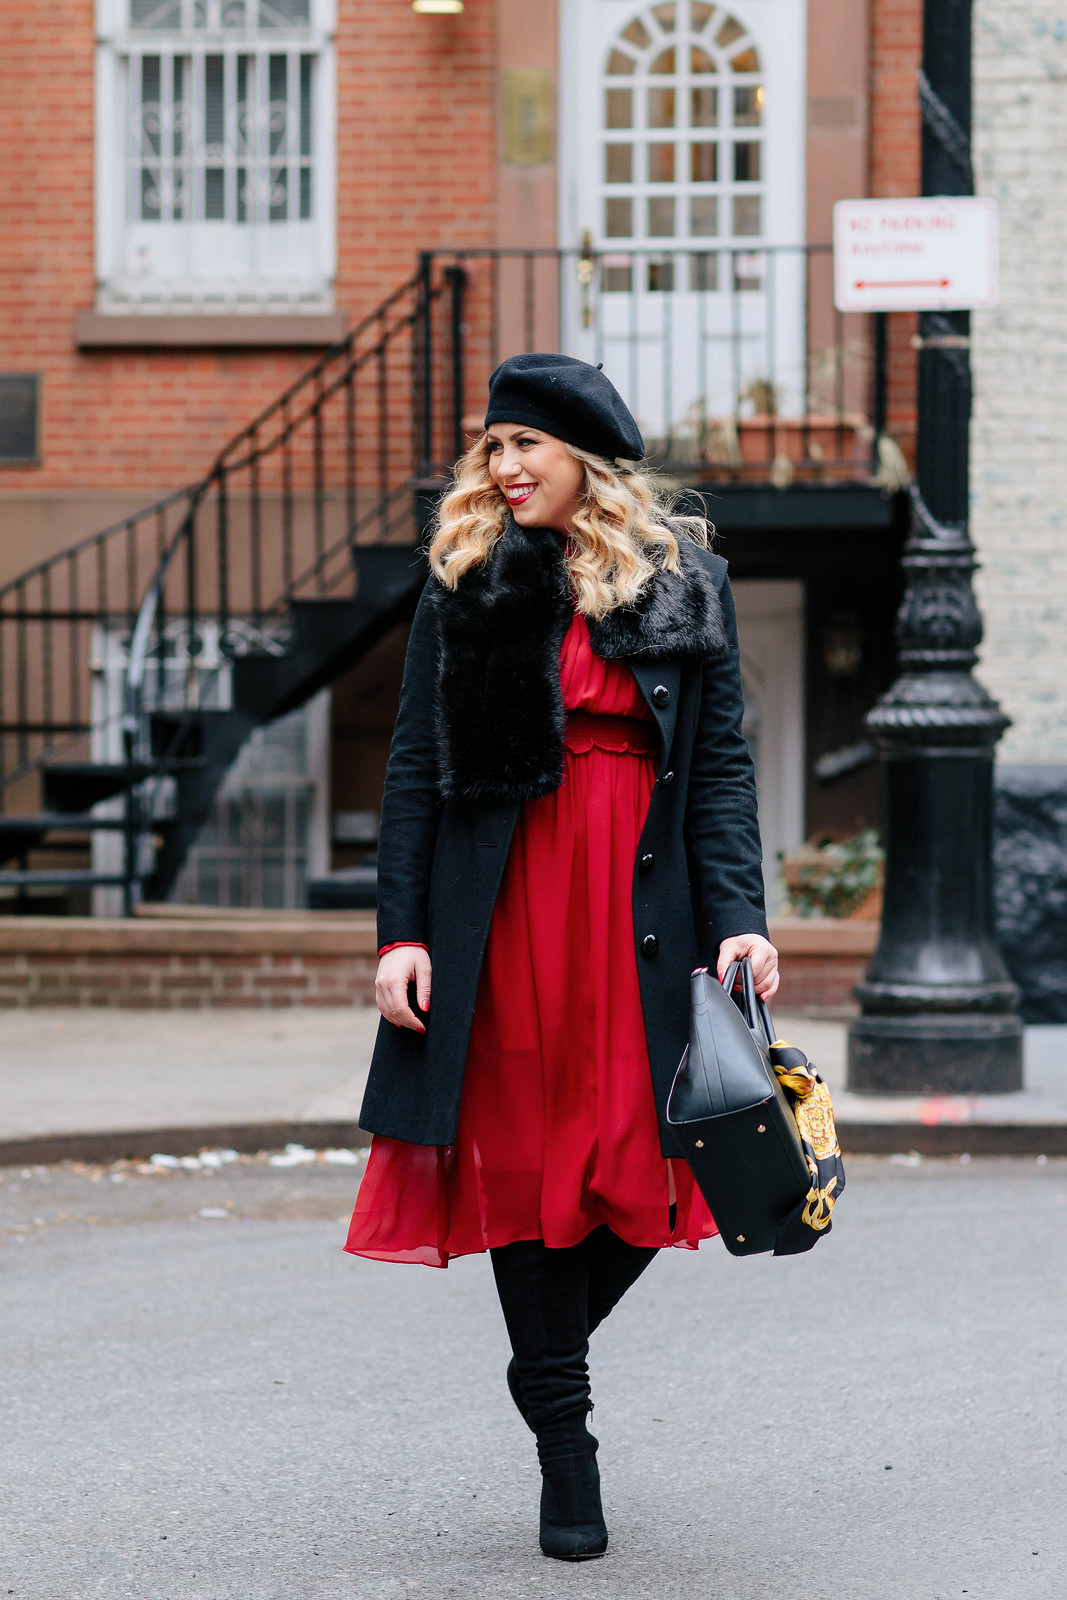 Lady in Red. Black Faux Fur Coat Red Midi Chiffon Dress Black Boots NYC Fashion